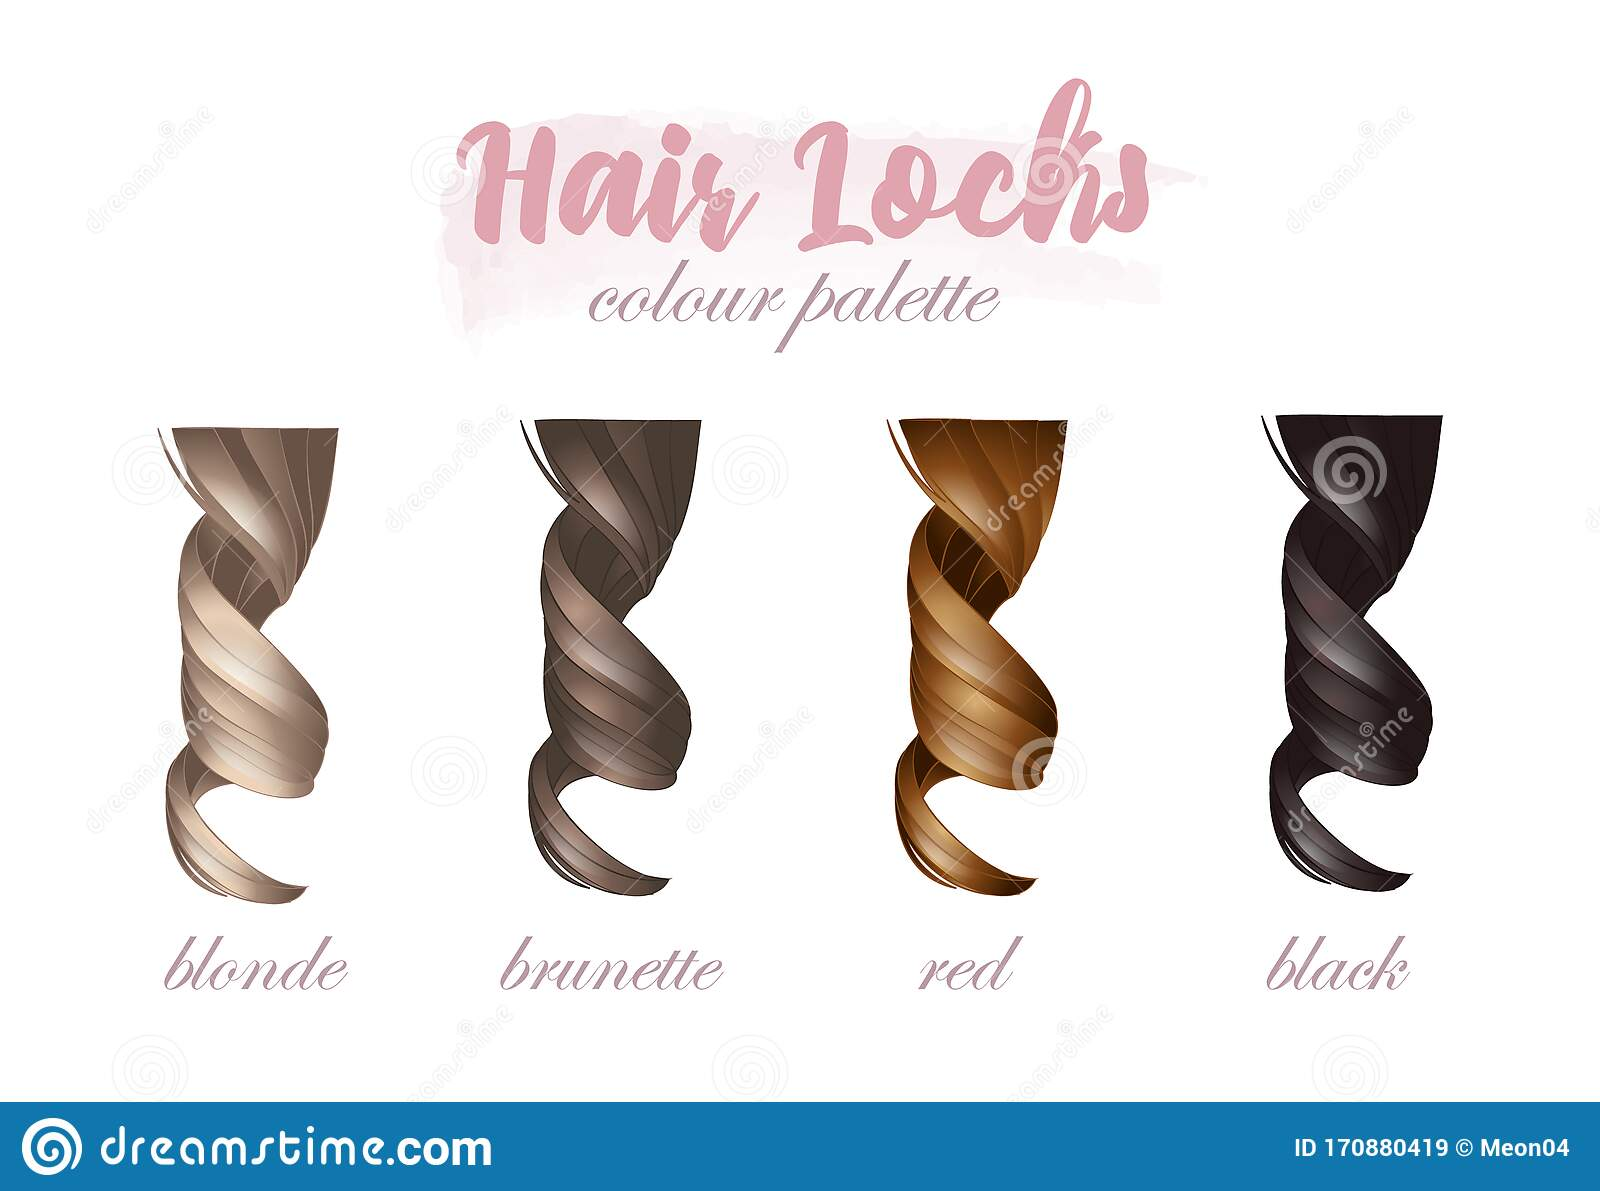 Hair Locks Colour Palette Natural Shades Stock Vector Illustration Of Bright Healthy 170880419